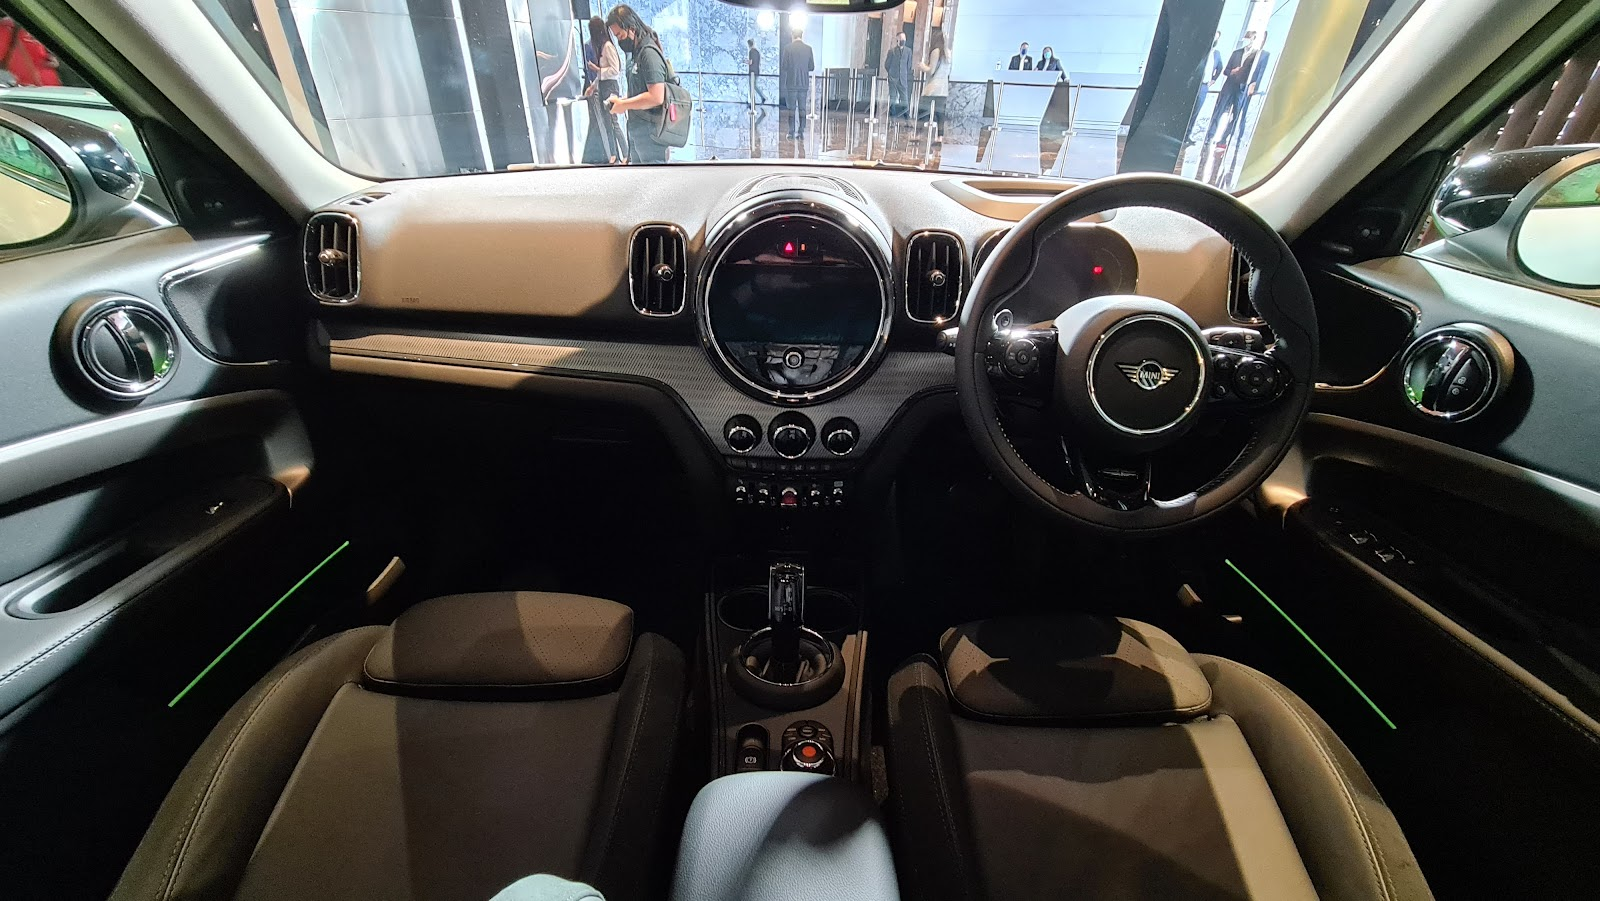 2021 MINI Cooper SE Countryman Sage Blue 8.8-inch infotainment screen